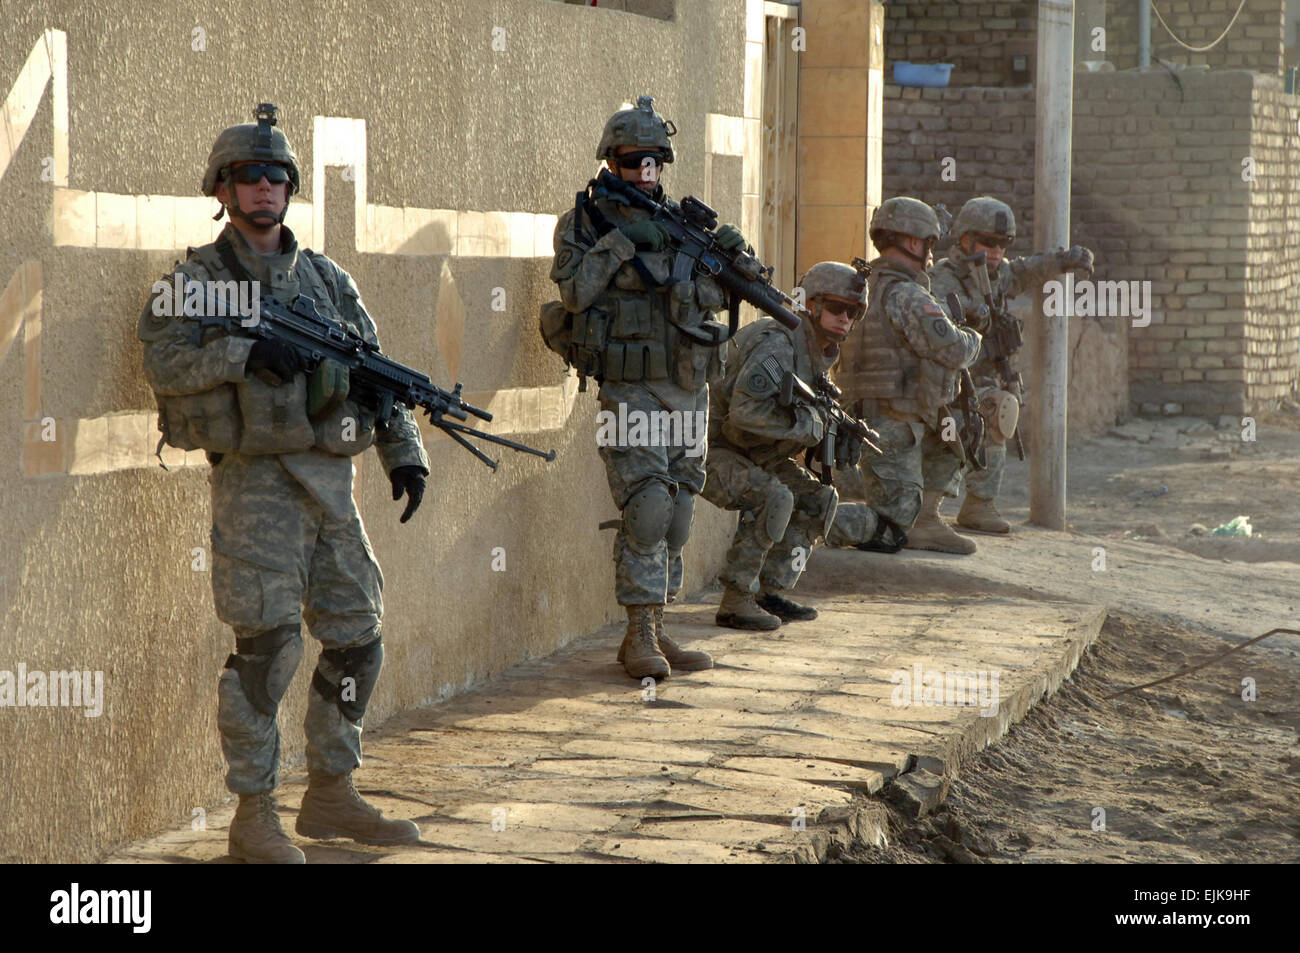 Soldiers 2nd Stryker Cavalry Regiment Stockfotos & Soldiers 2nd ...